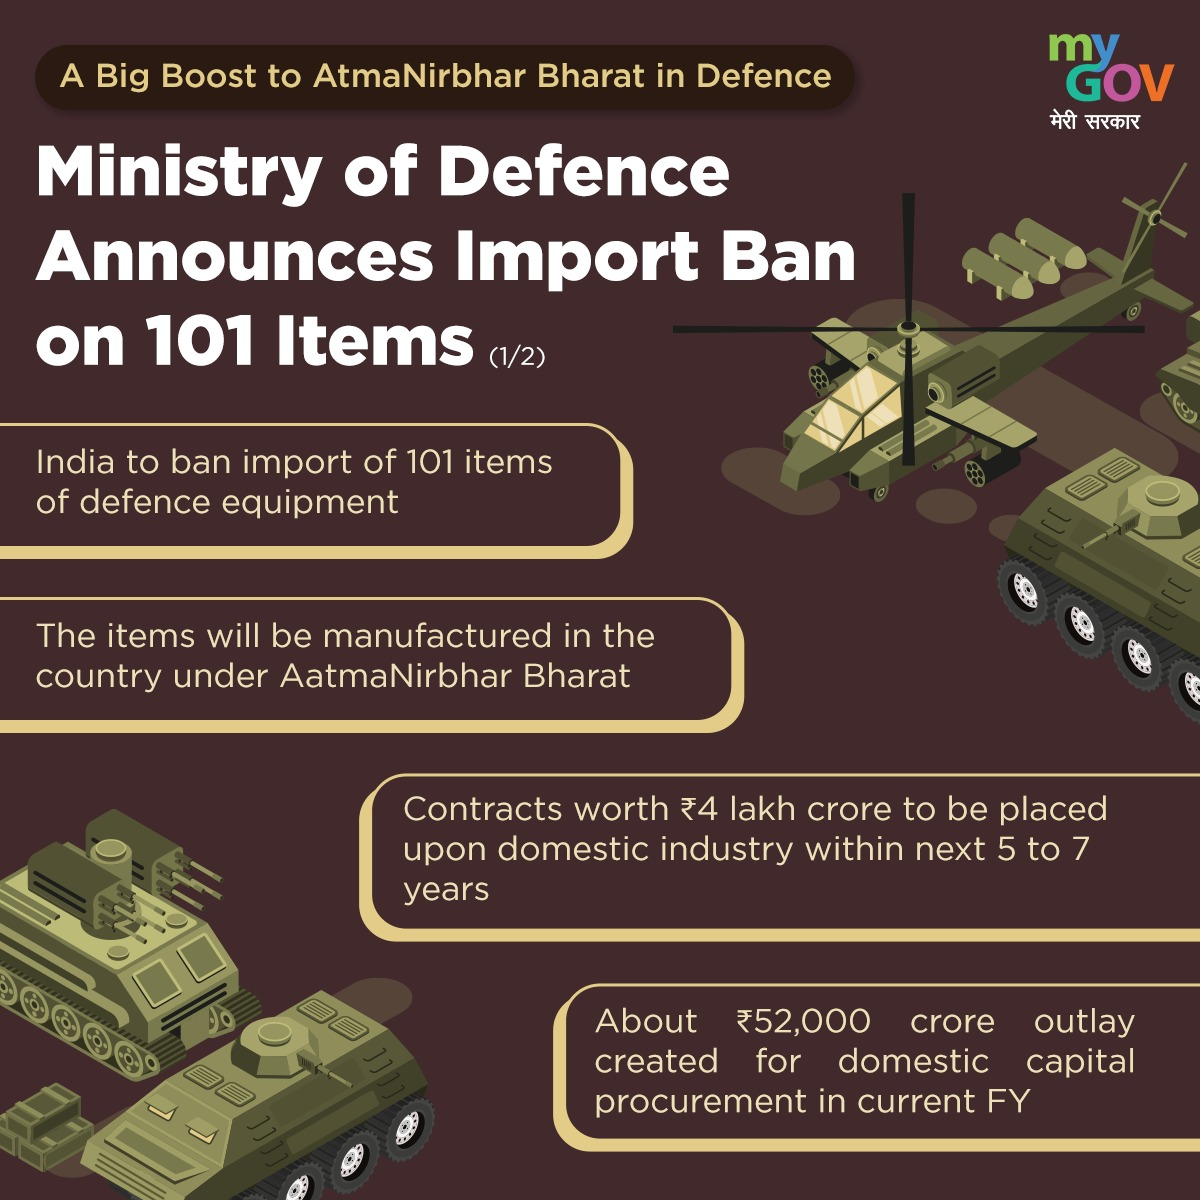 A big boost to #AatmaNirbharBharat in the Defence sector! @DefenceMinIndia announces import ban on 101 items. Take a look! https://t.co/QmUuaQdA8m